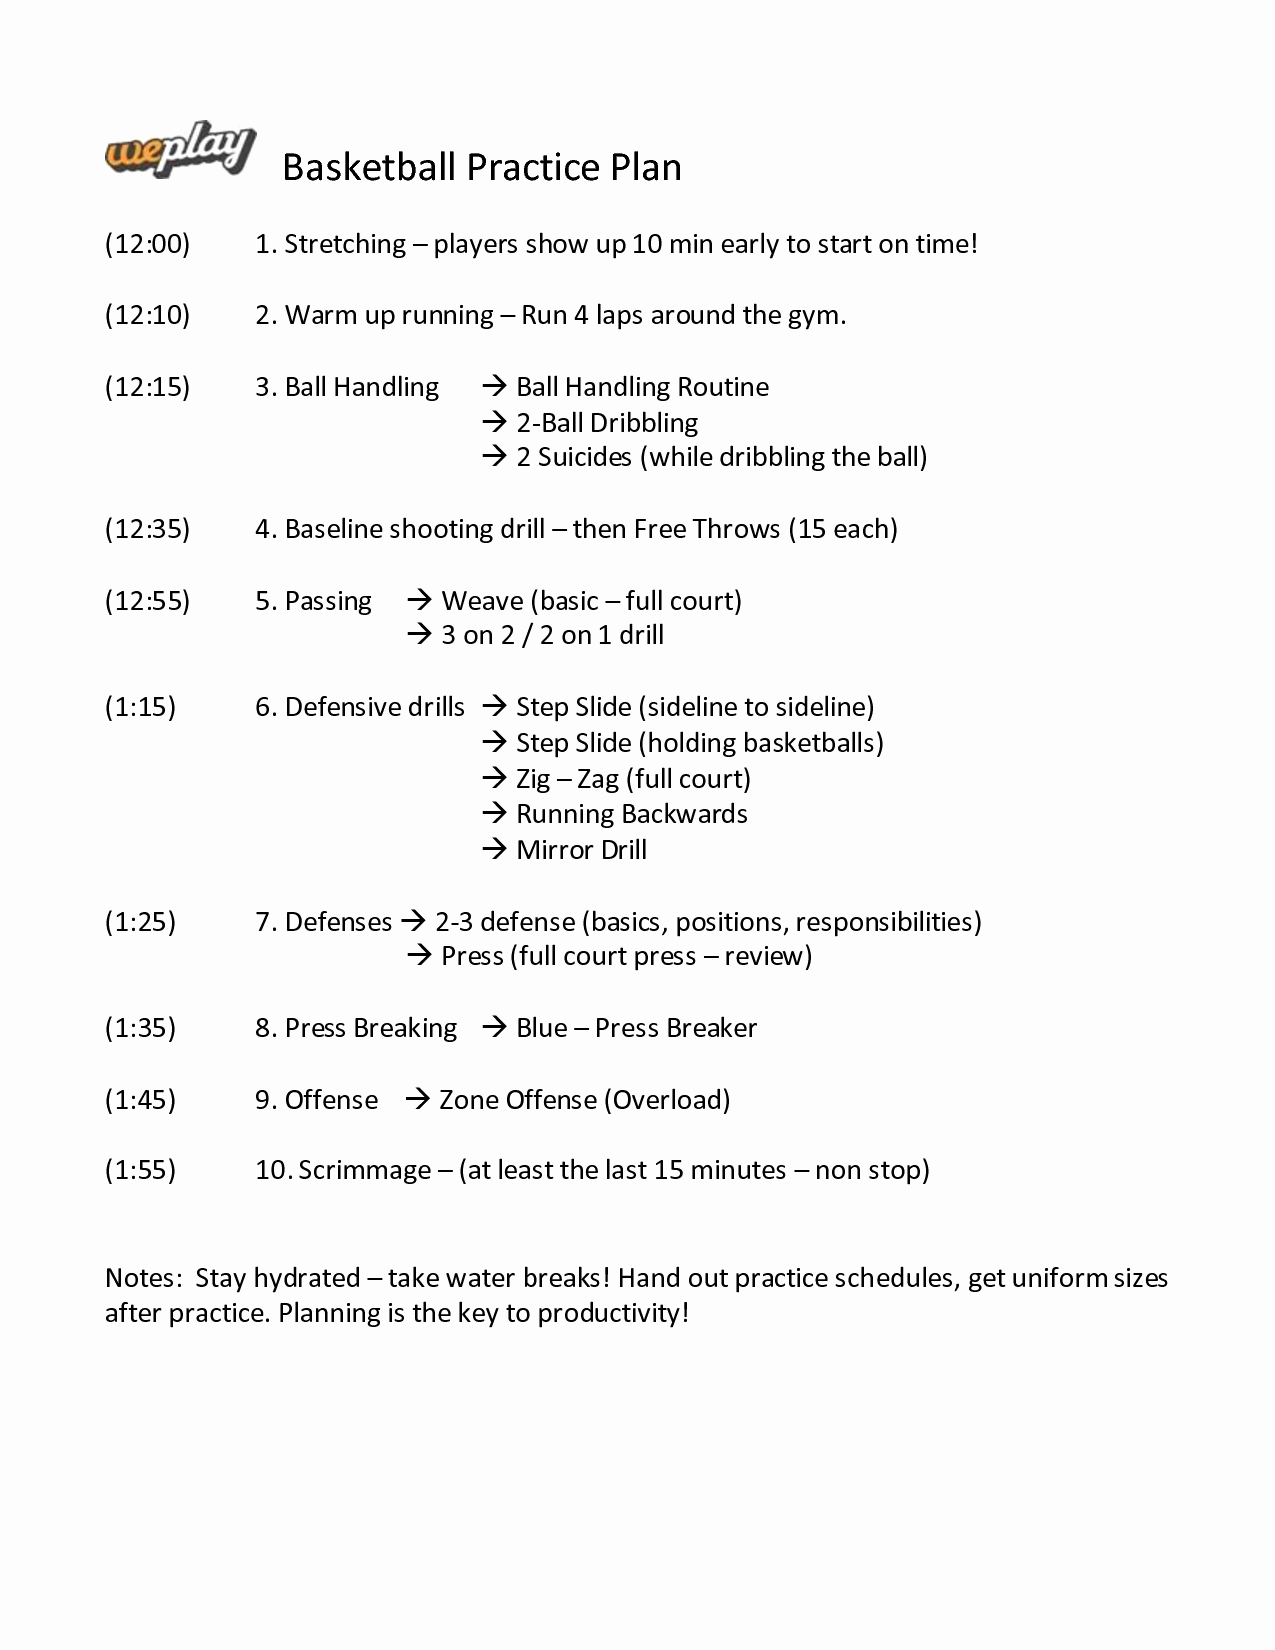 Basketball Practice Plan Template Luxury Basketball Practice Plan Template